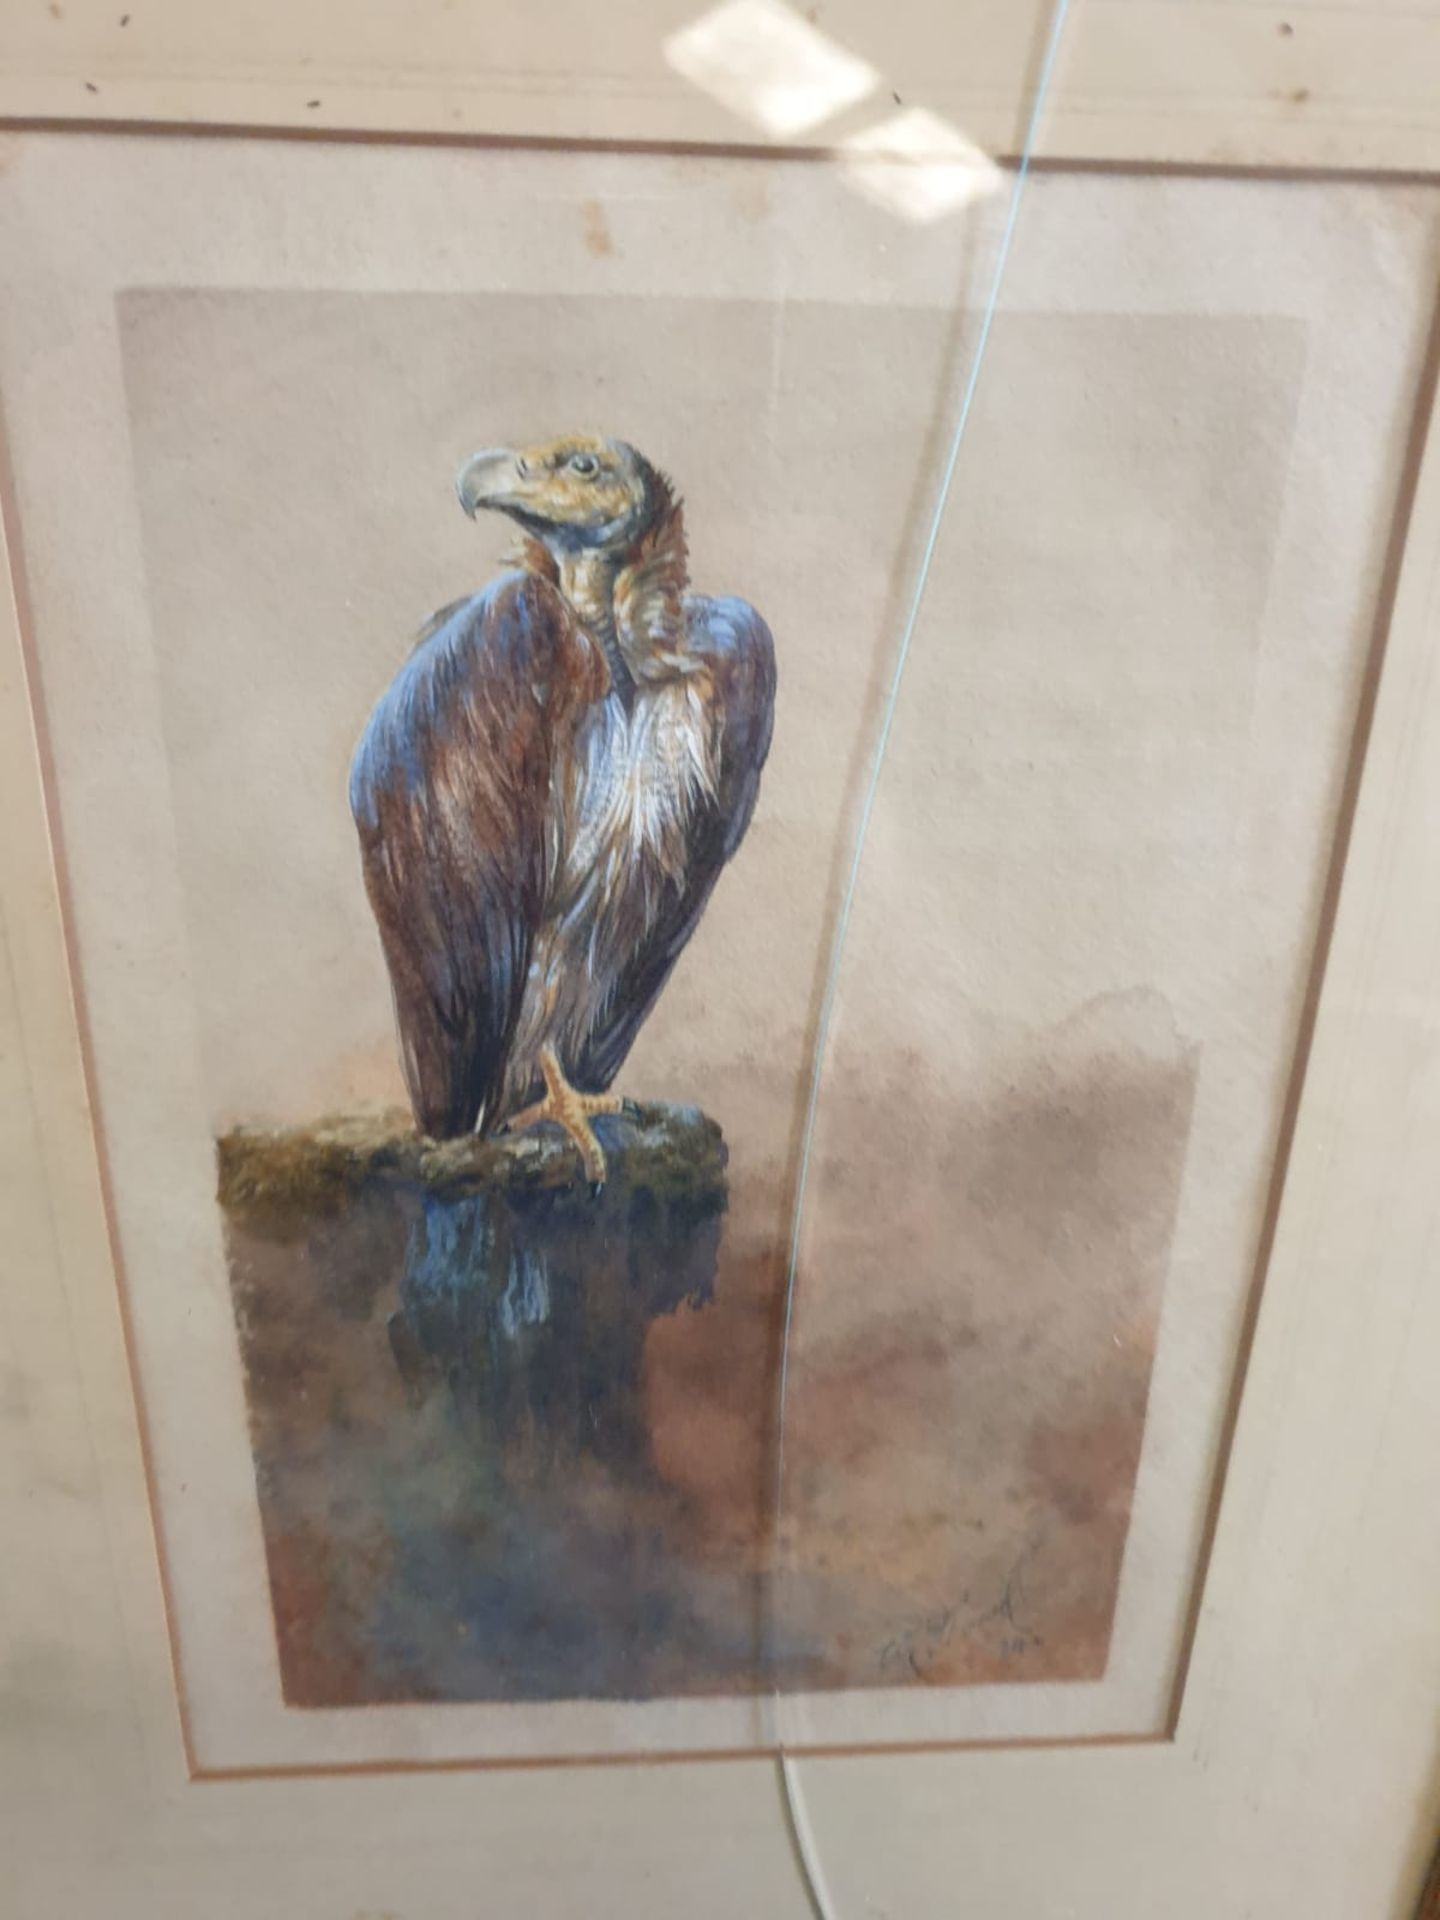 Framed Watercolour William E Powell [British 1878-1955] Vulture. Watercolour on paper. Signed and - Image 4 of 4